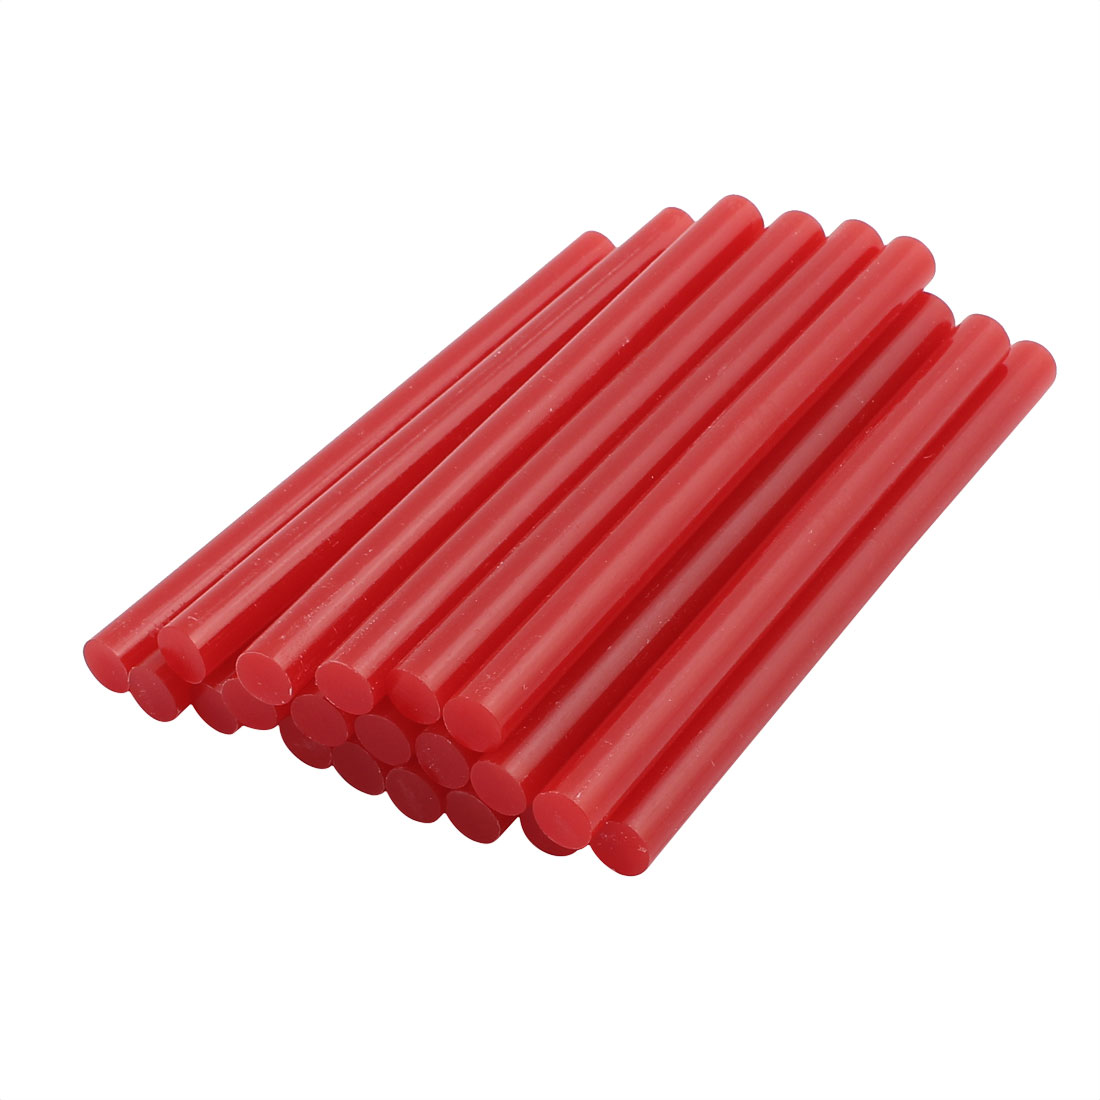 20pcs 7mm x 100mm Economy Hot Melt Glue Sticks Red for DIY Small Craft Projects